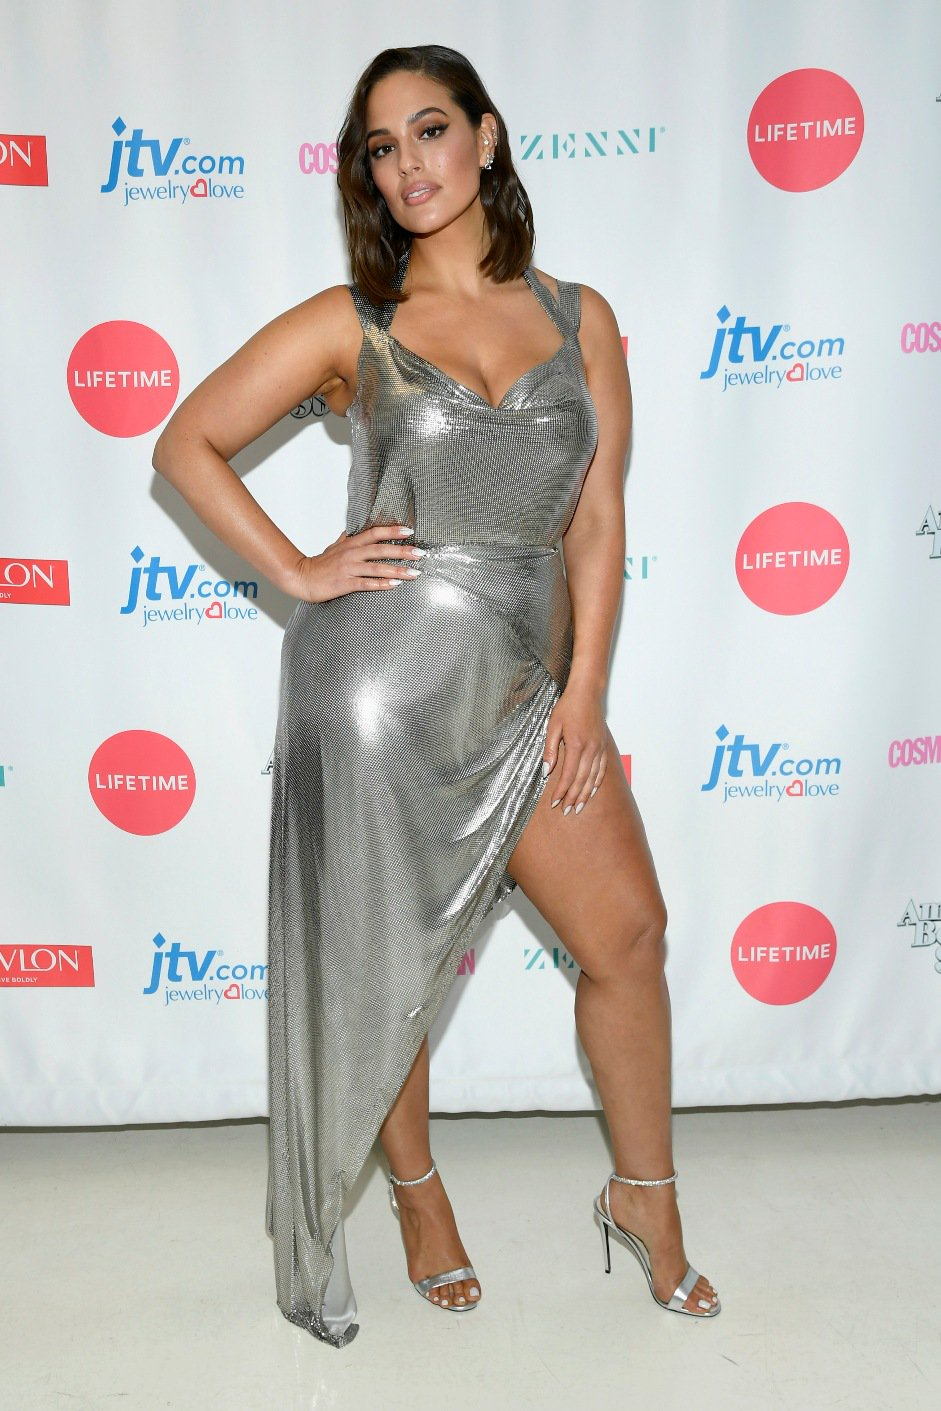 a12444f3a Ashley Graham turns up the heat in low cut dress in NYC